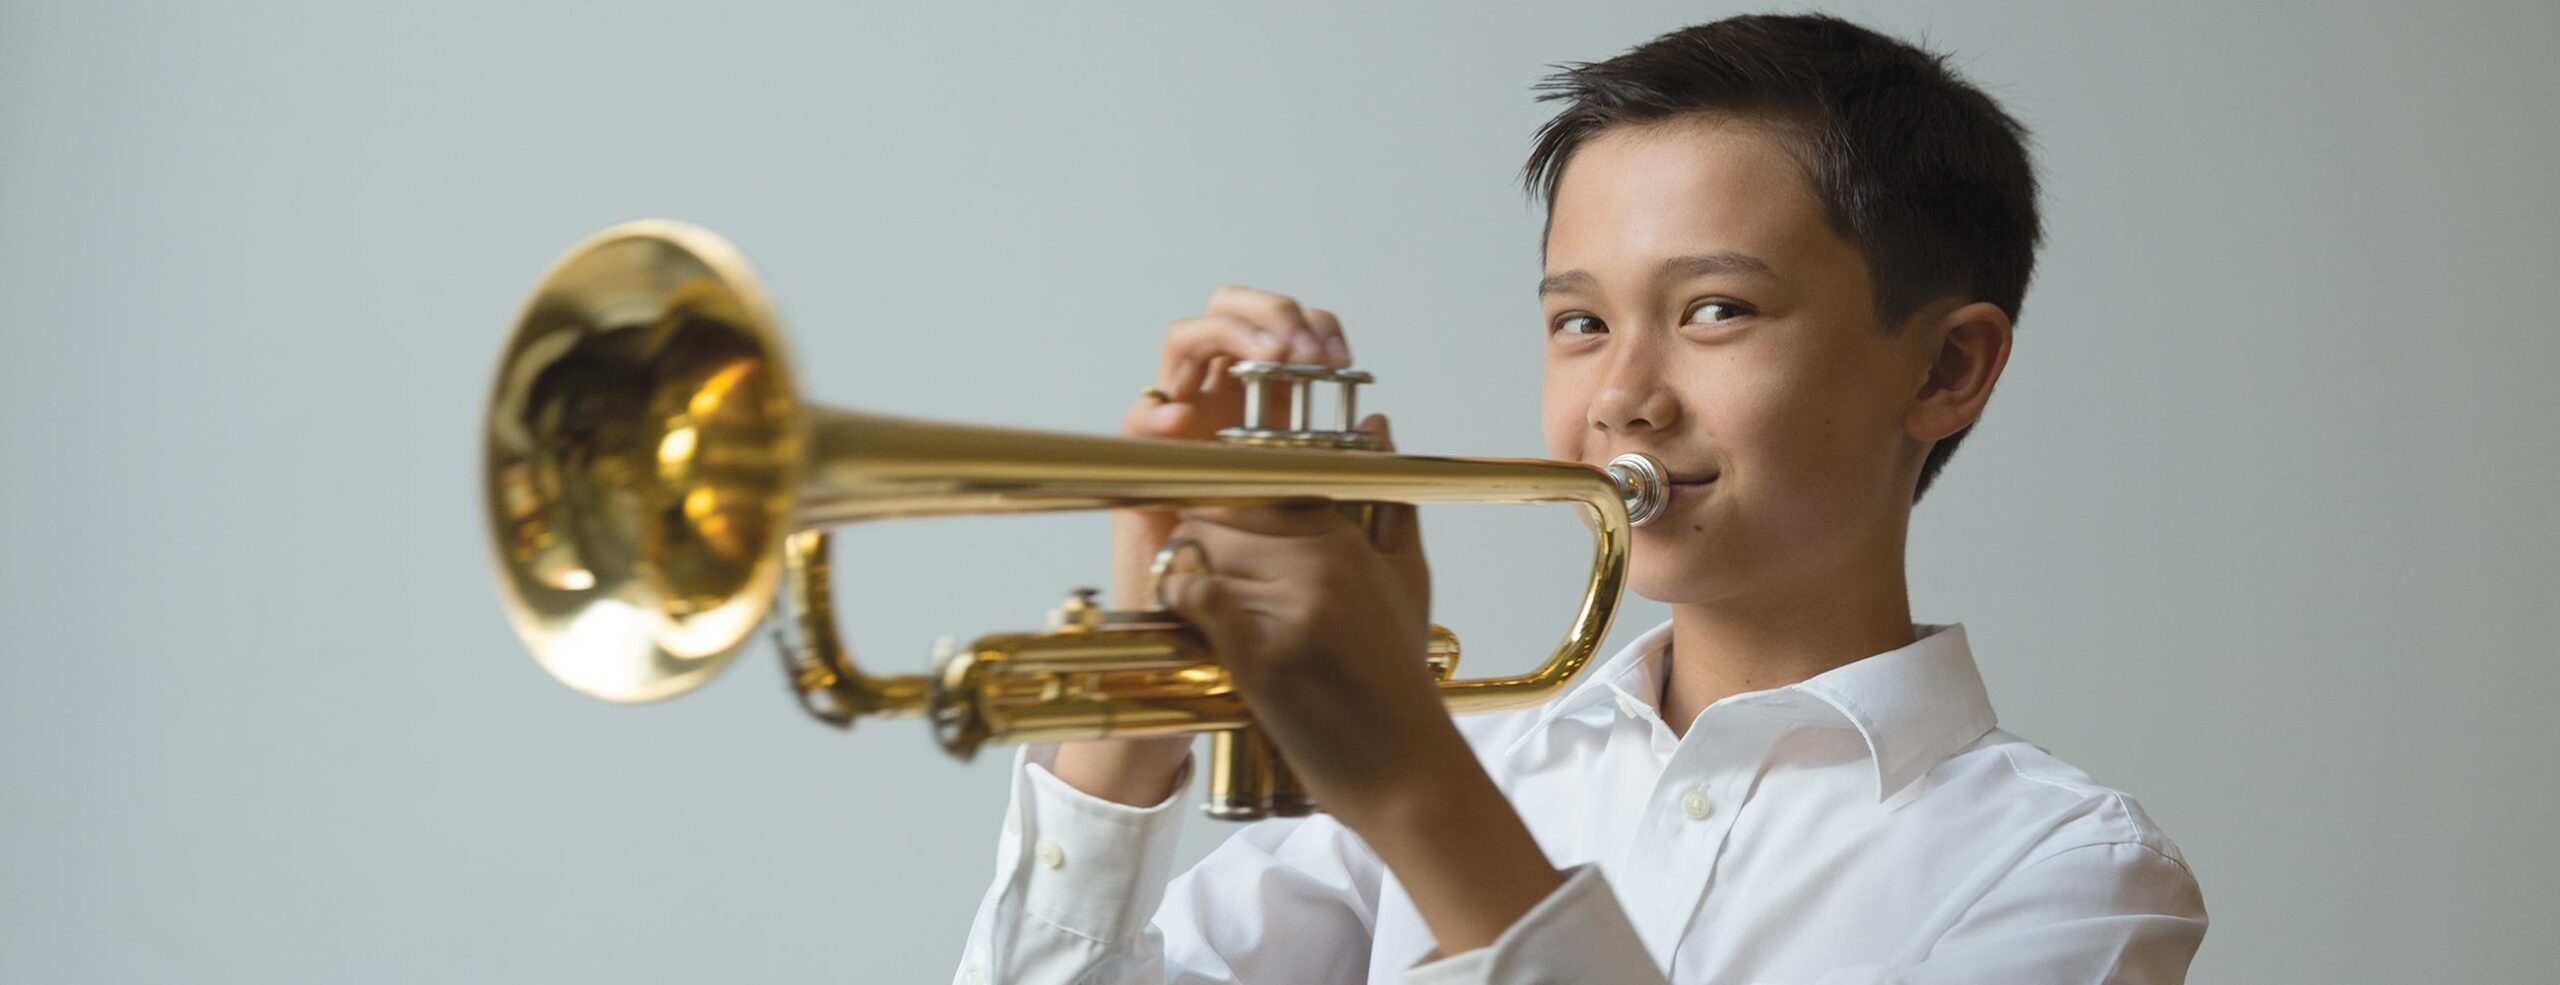 Trumpet student playing